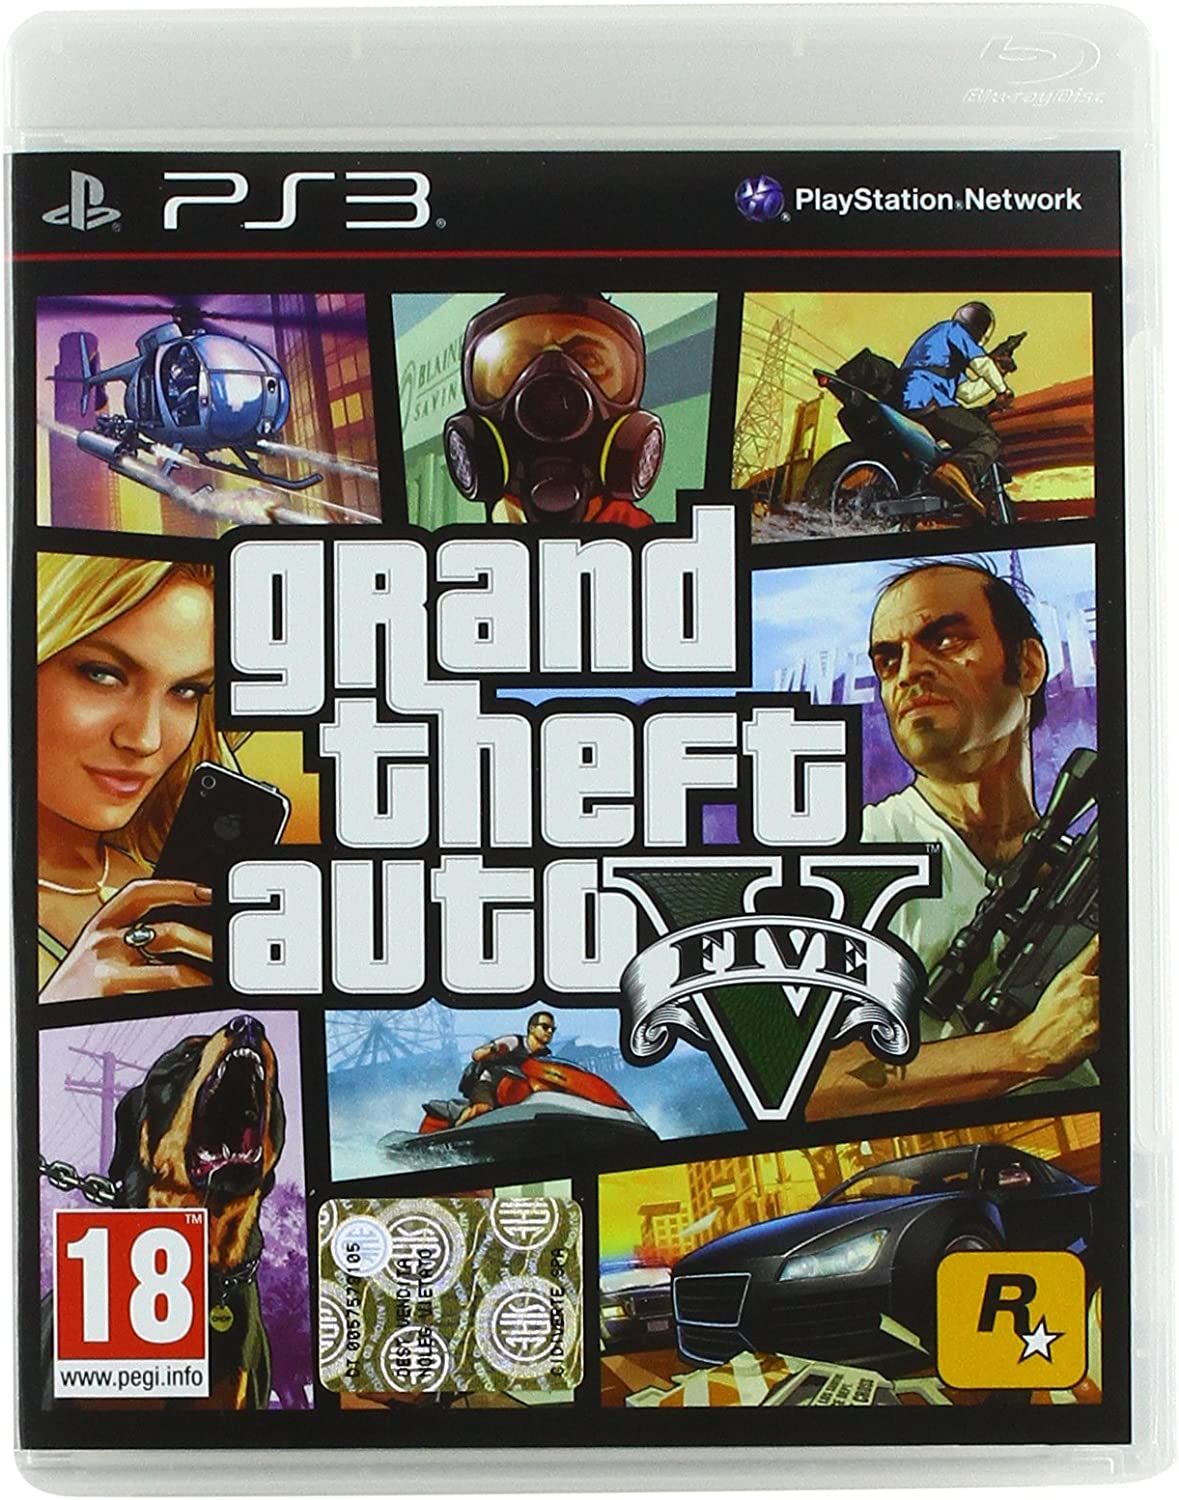 Grand Theft Auto V (GTA 5) [Importación italiana]: Amazon.es: Videojuegos